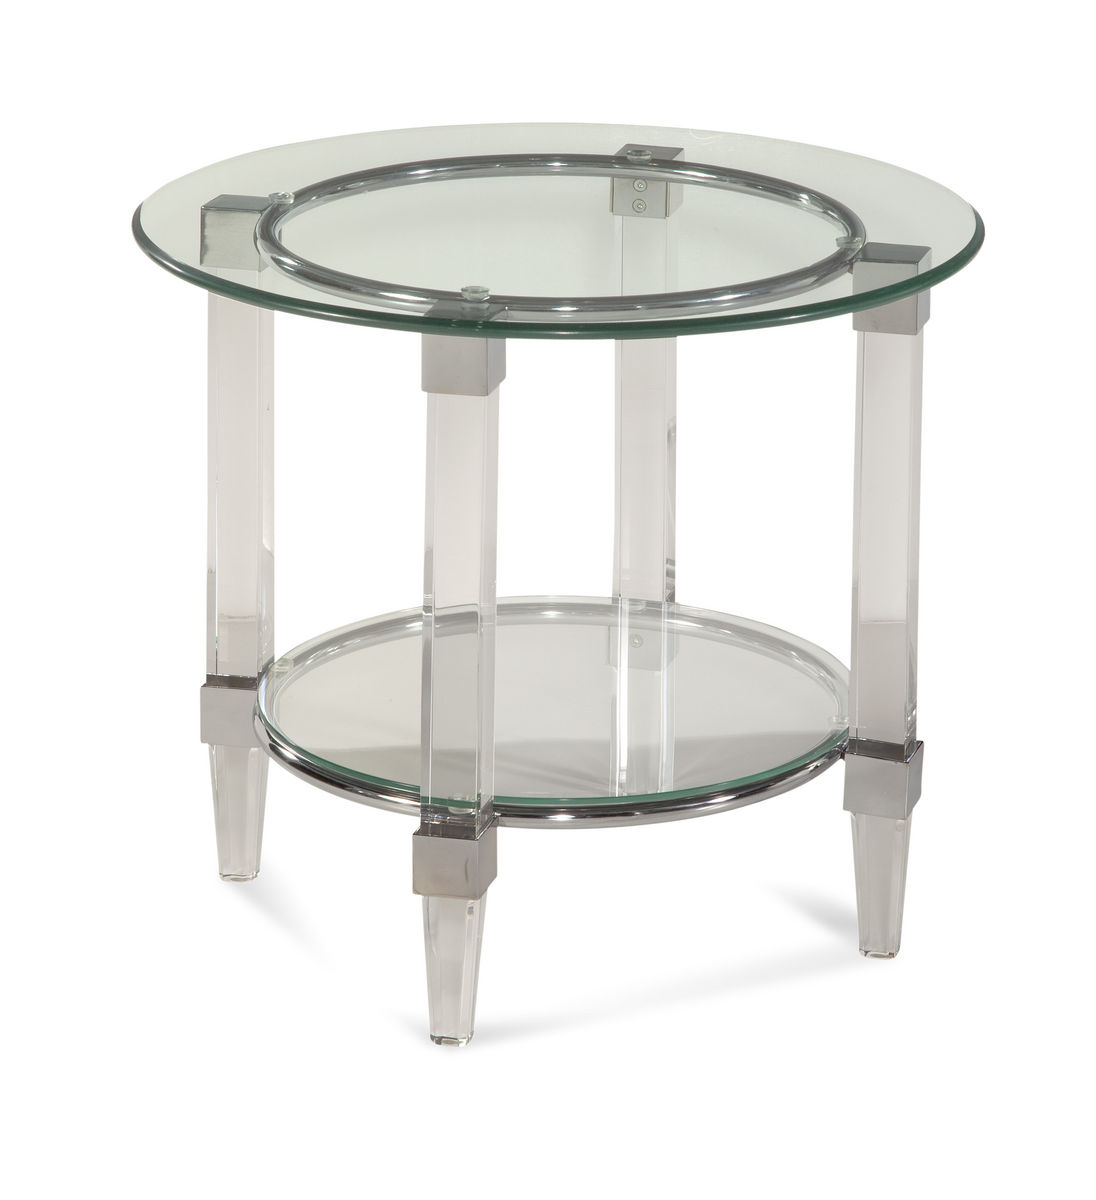 Cristal Round End Table Acrylic Amp Chrome 2929 220ec